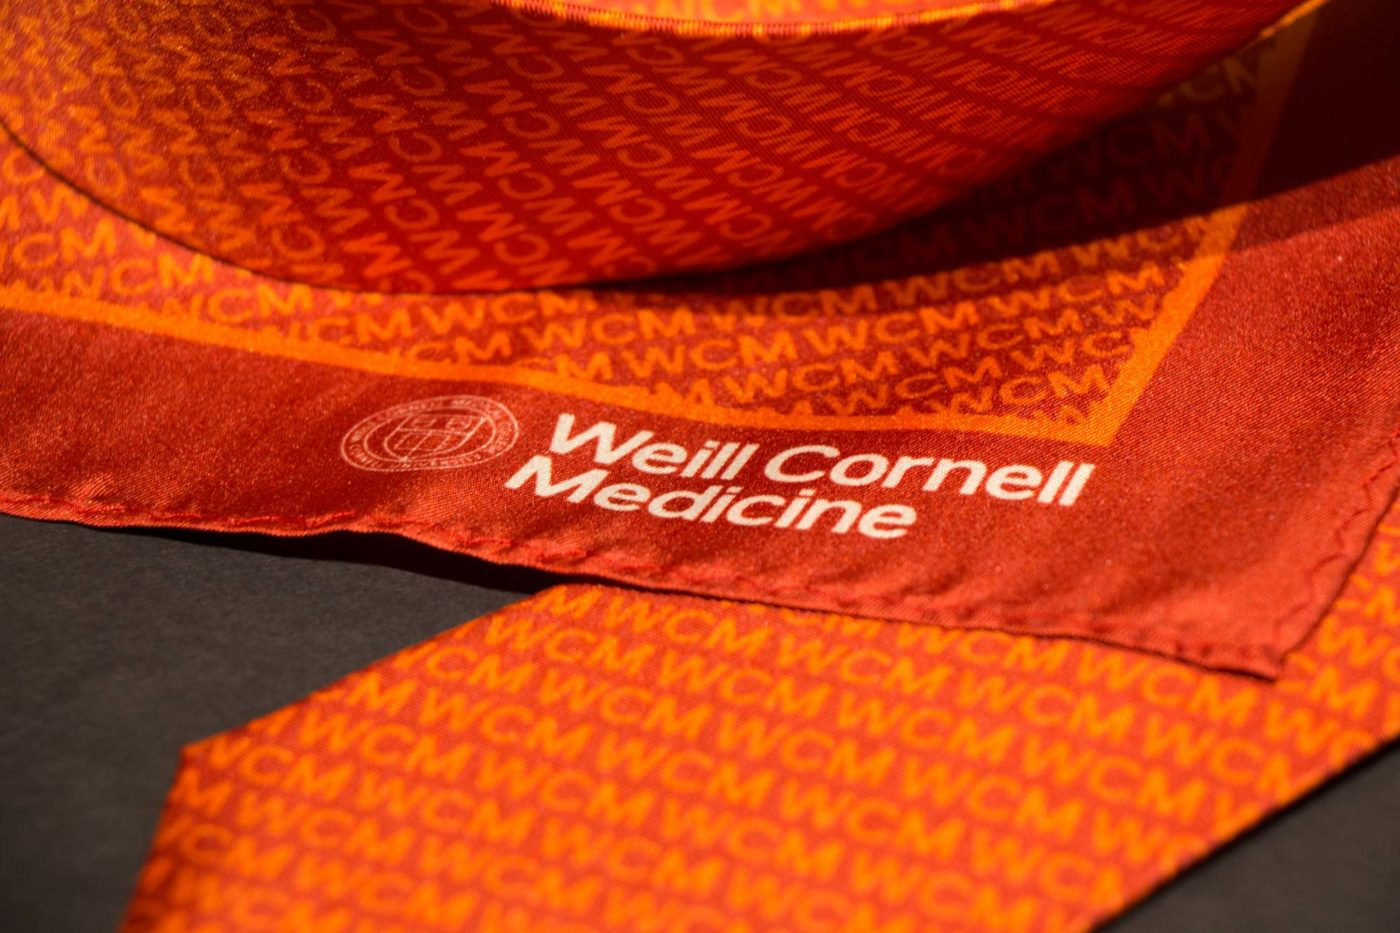 Weill Cornell Medicine | Marketing – Dragonfly Design Group